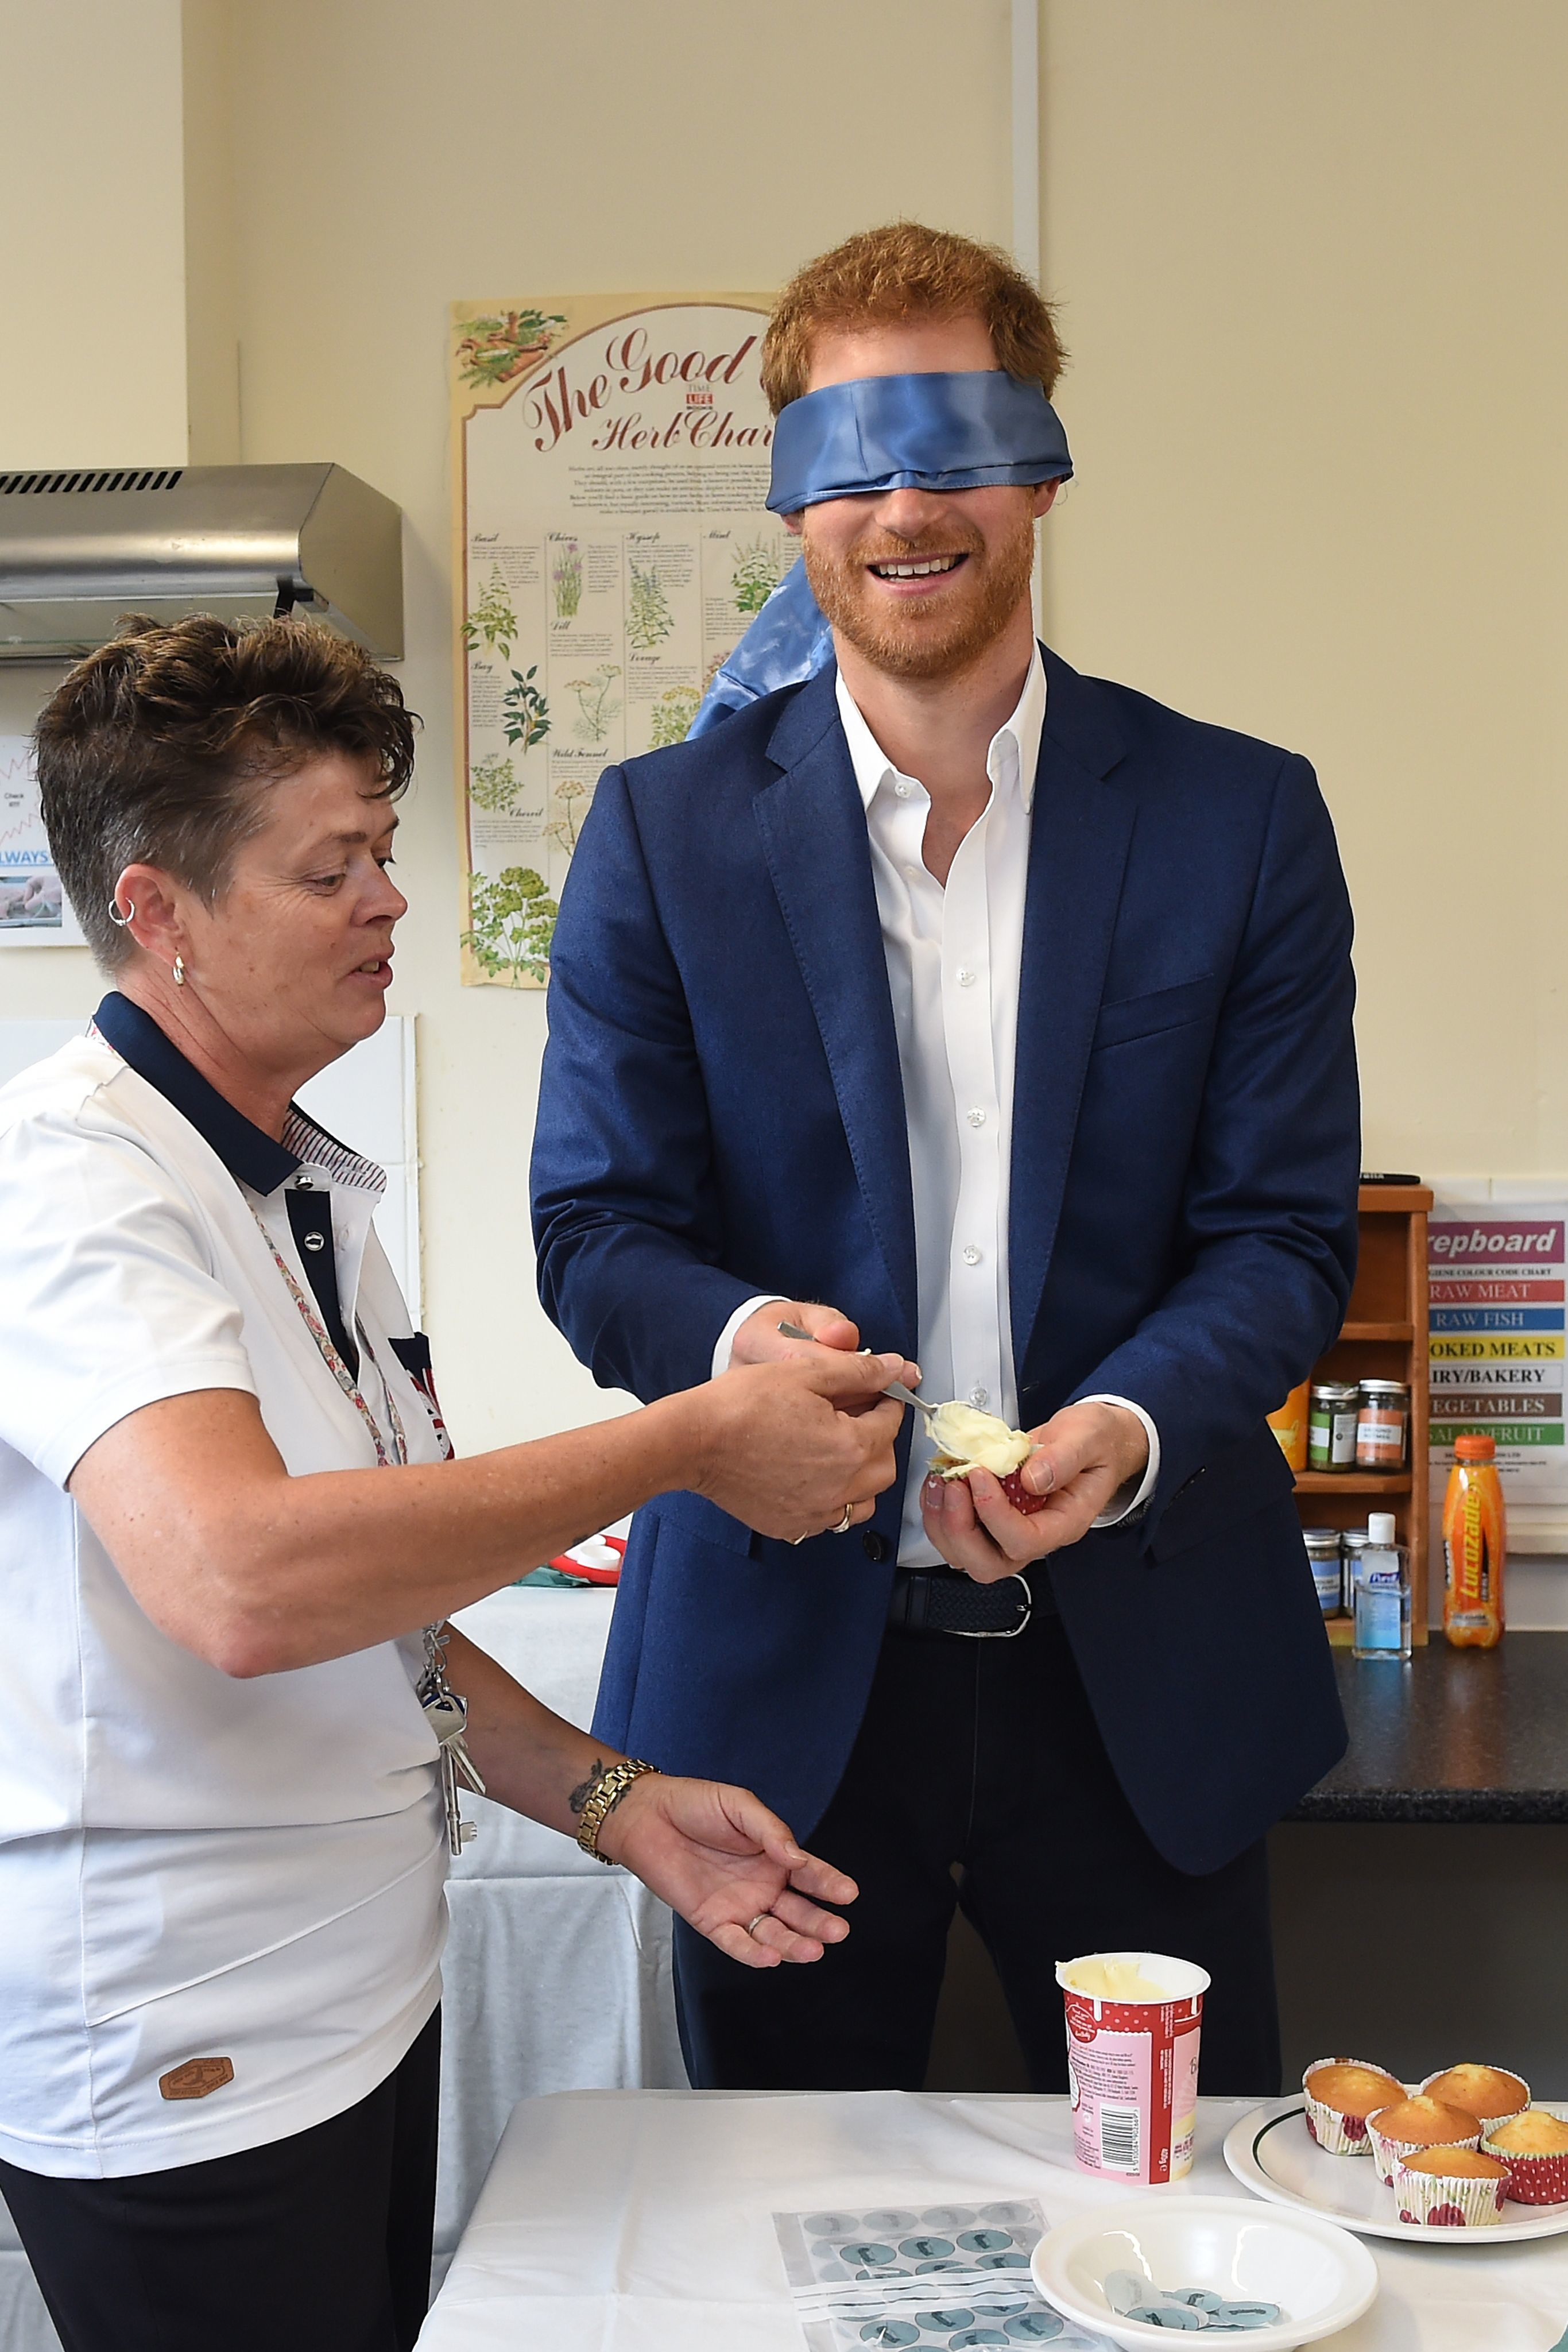 Prince Harry decorates a cake  in Ipswich, England, on July 20, 2017.